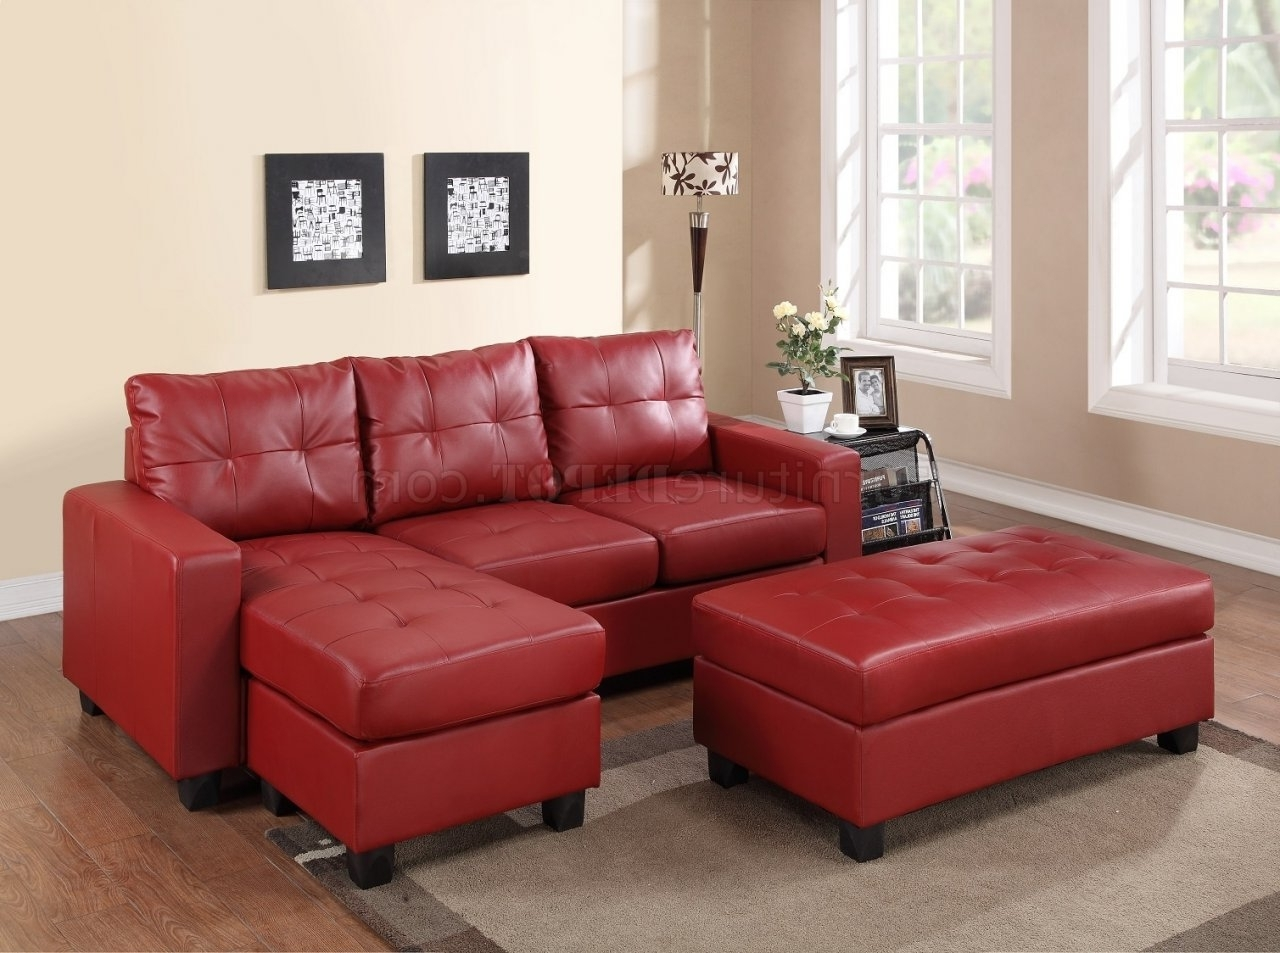 Red Leather Sectional Sofas With Recliners For Most Popular Sofas: Luxury Your Living Room Sofas Design With Red Sectional (View 6 of 15)